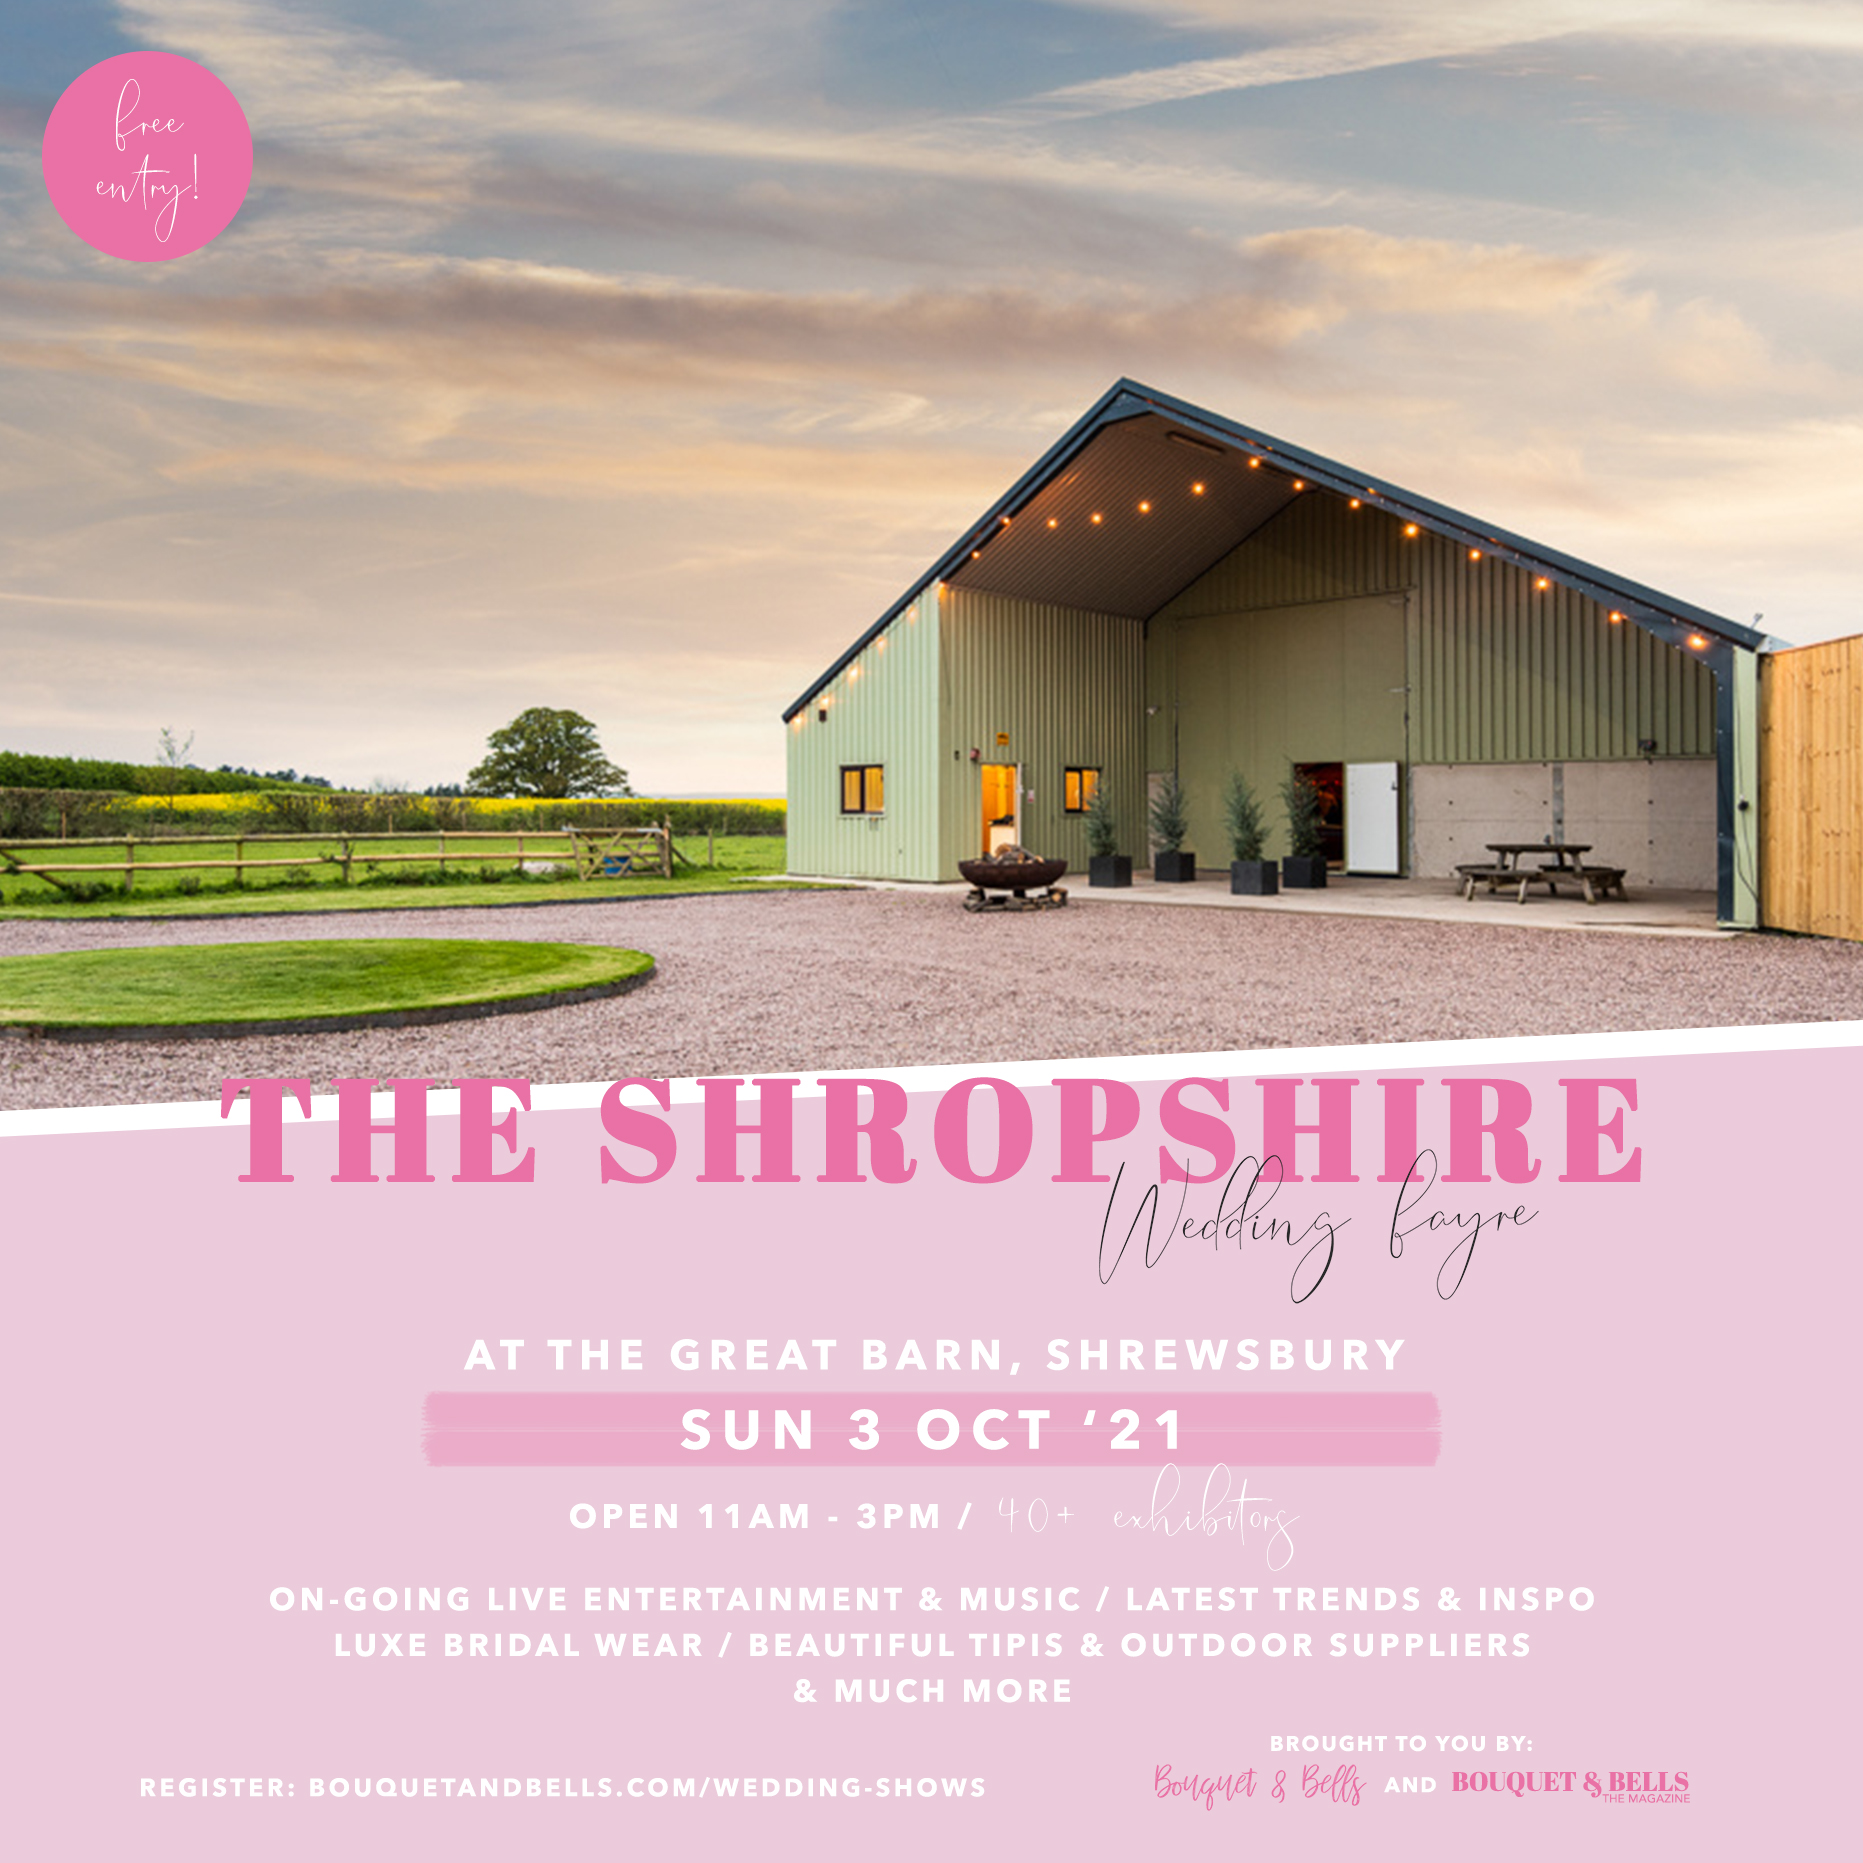 the-shropshire-wedding-fayre-the-great-barn-bouquet-and-bells